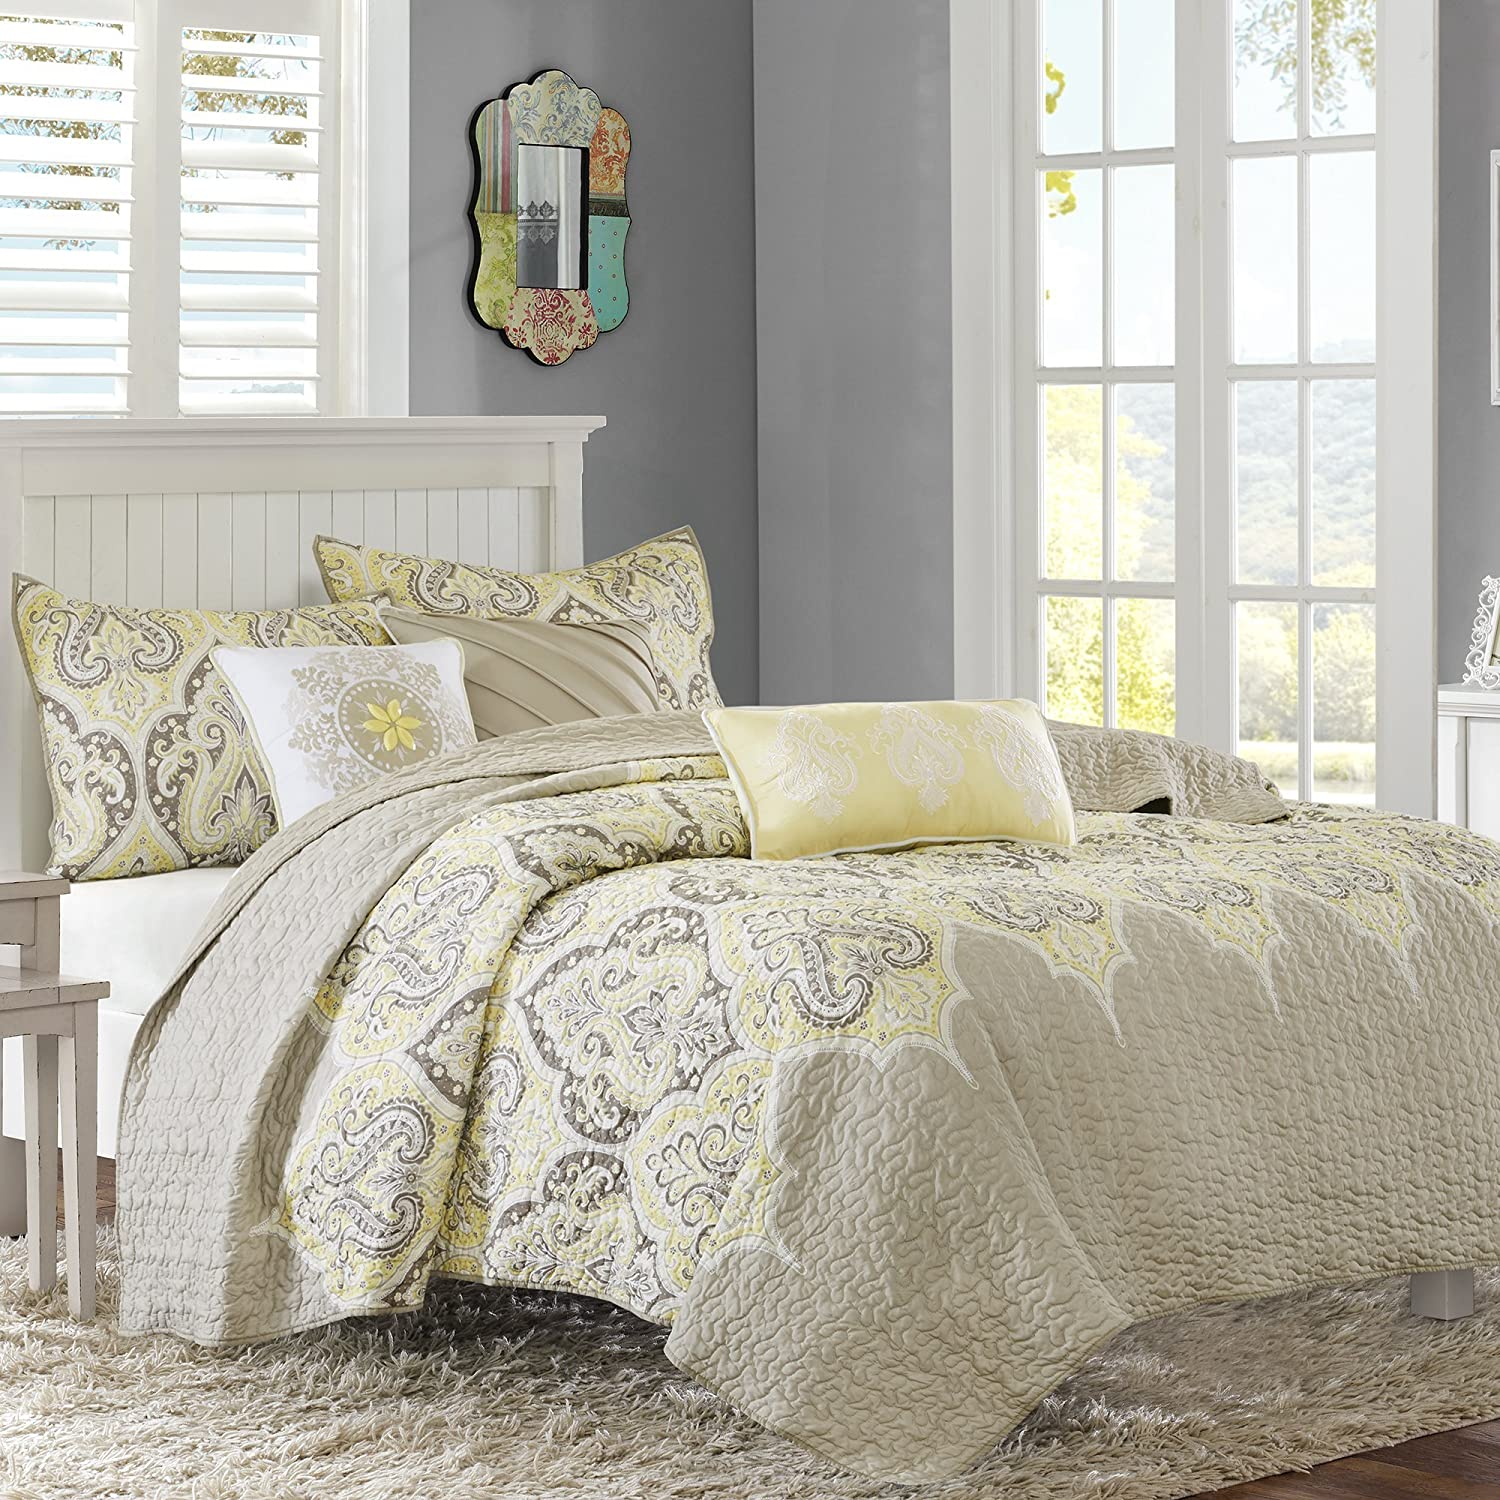 Teal Madison Park MP13-1683 Nisha 6 Piece Quilted Coverlet Set King//Cal King